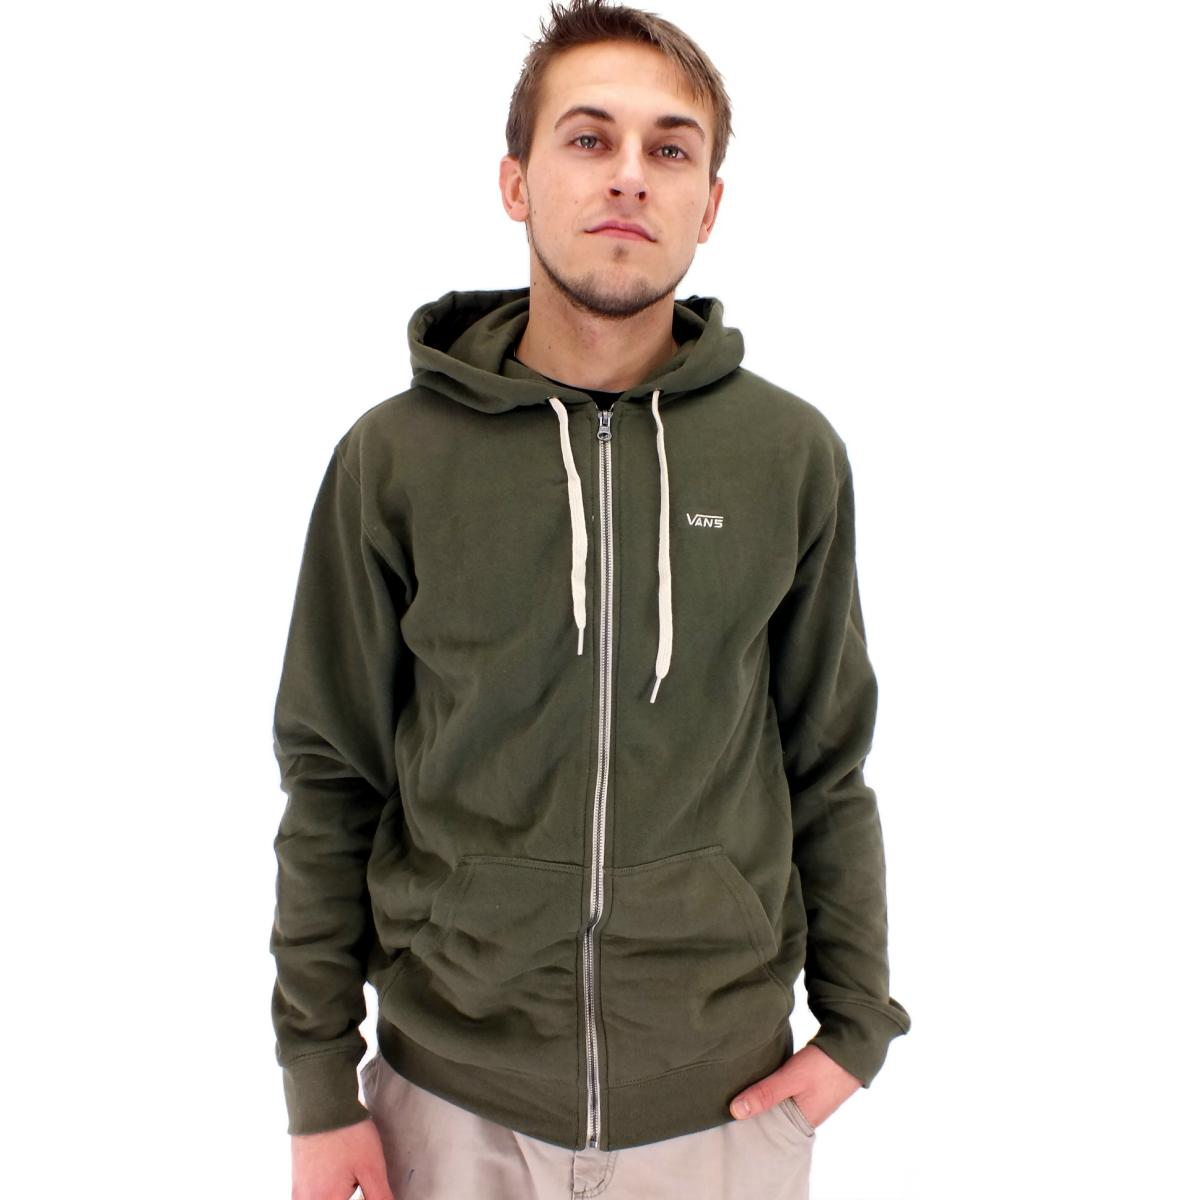 vans core basic zip hoodie herren jacke kapuzenjacke sweatshirt diverse farben. Black Bedroom Furniture Sets. Home Design Ideas